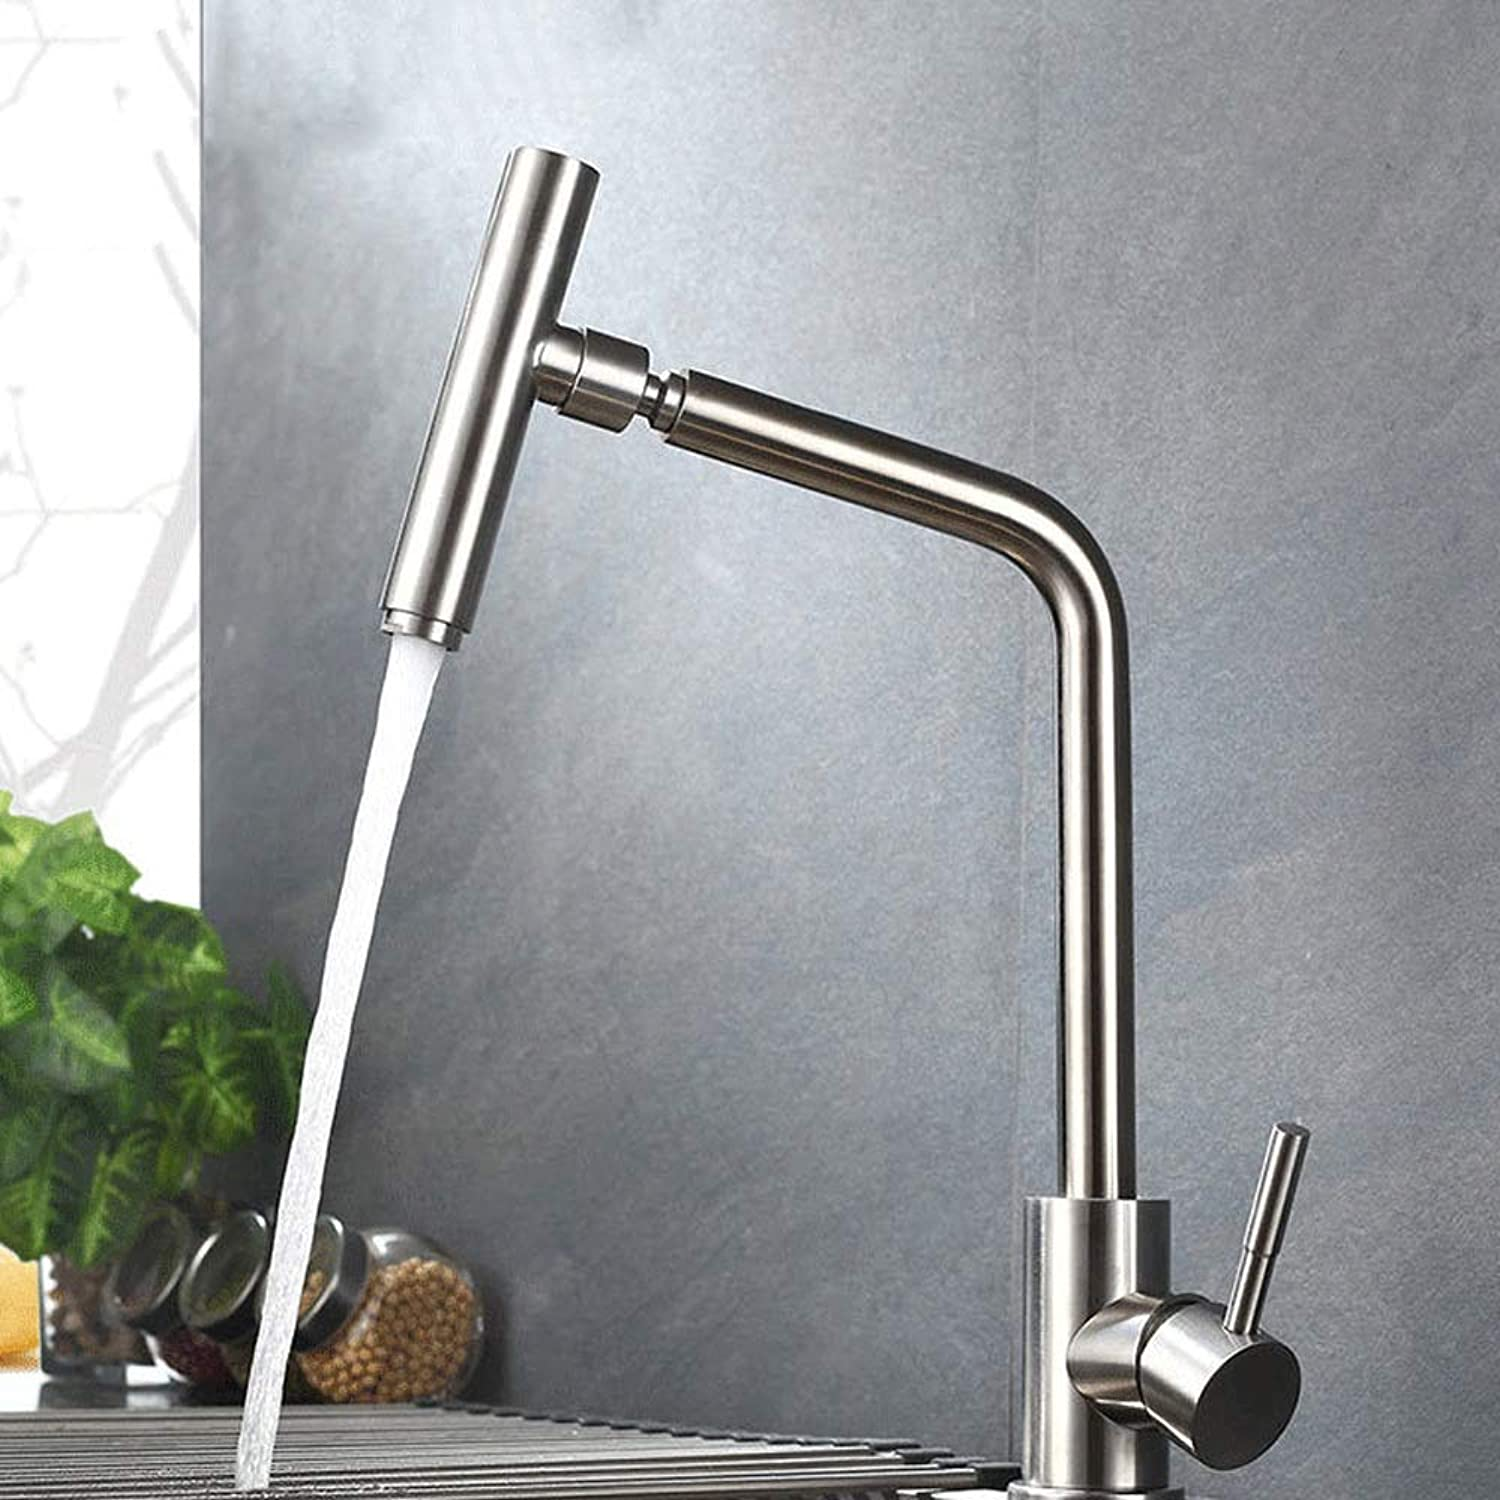 Modenny Kitchen redating Hot And Cold Tap Brushed Sink Faucet Bathroom Hot And Cold Water Mixer Tap Wash Basin Sink Hot And Cold Water Faucet